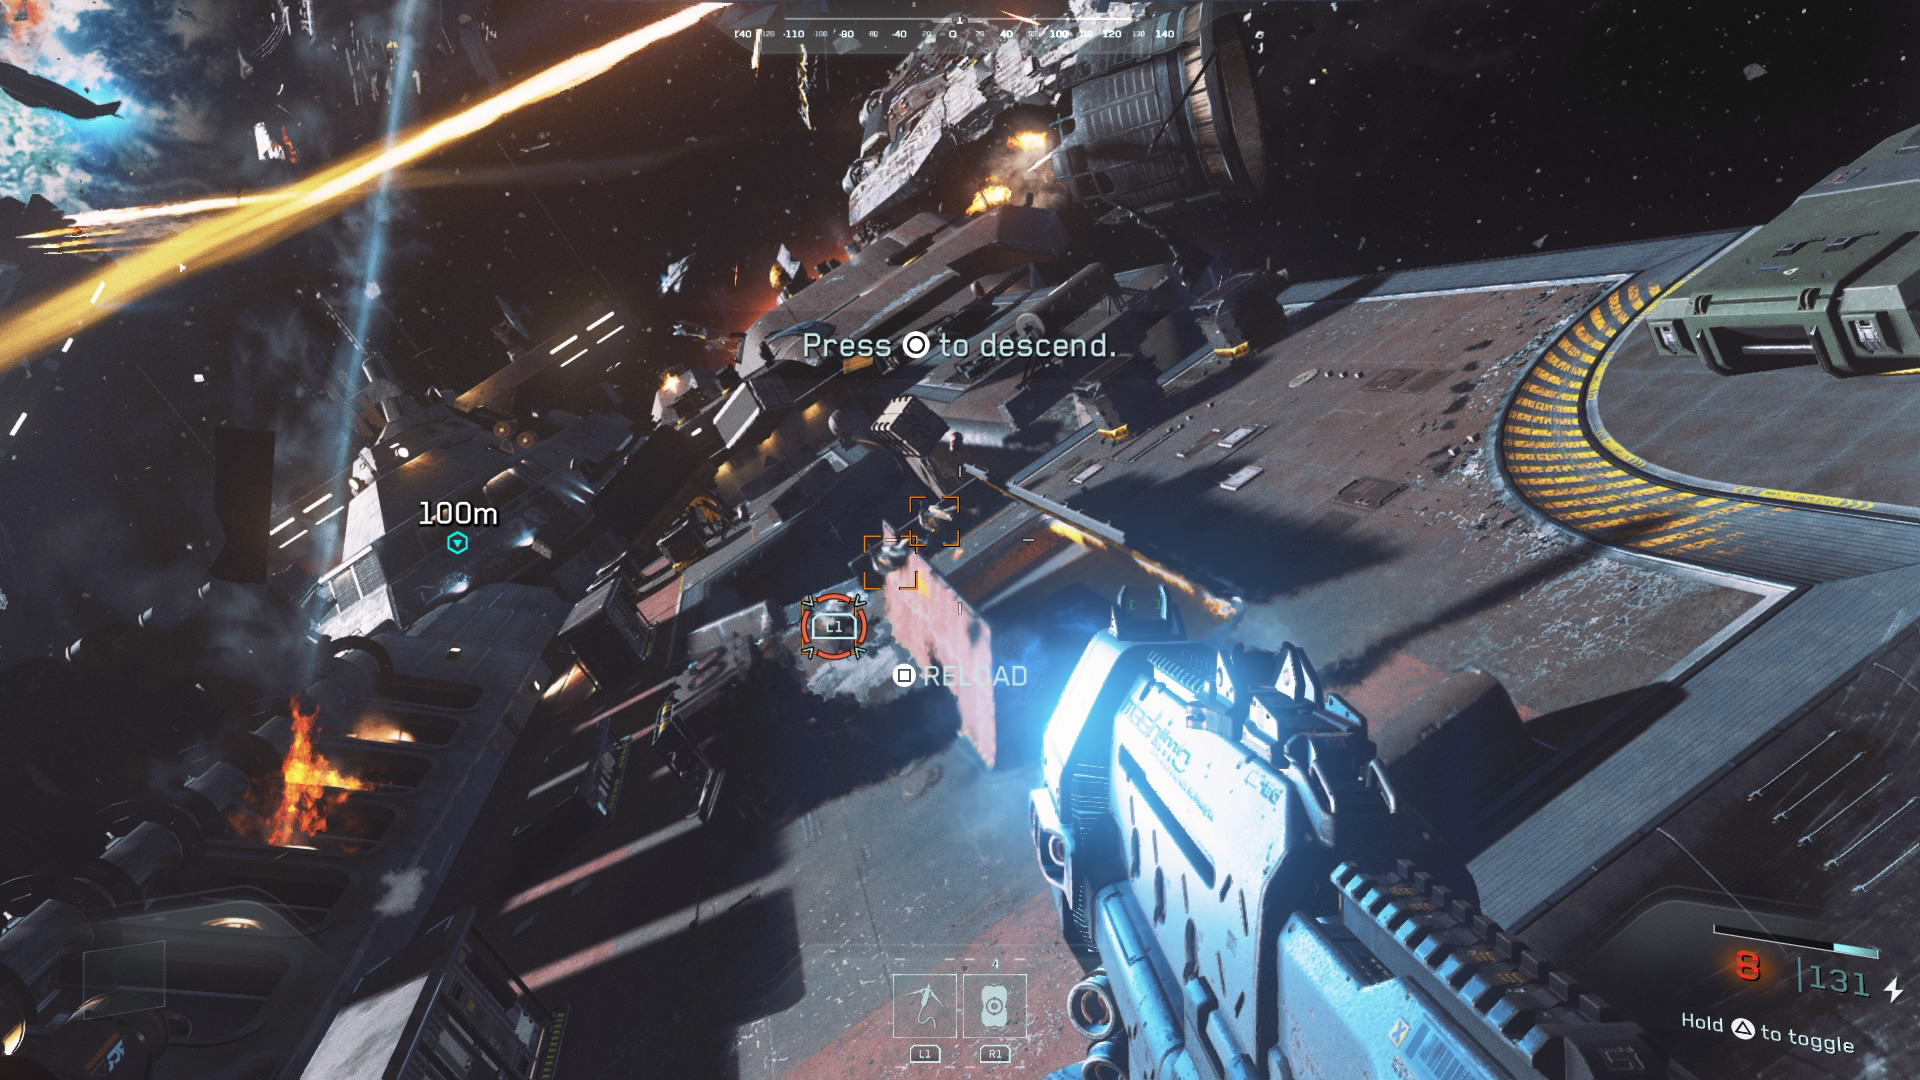 'Call of Duty: Infinite Warfare' PS4 Combat Space